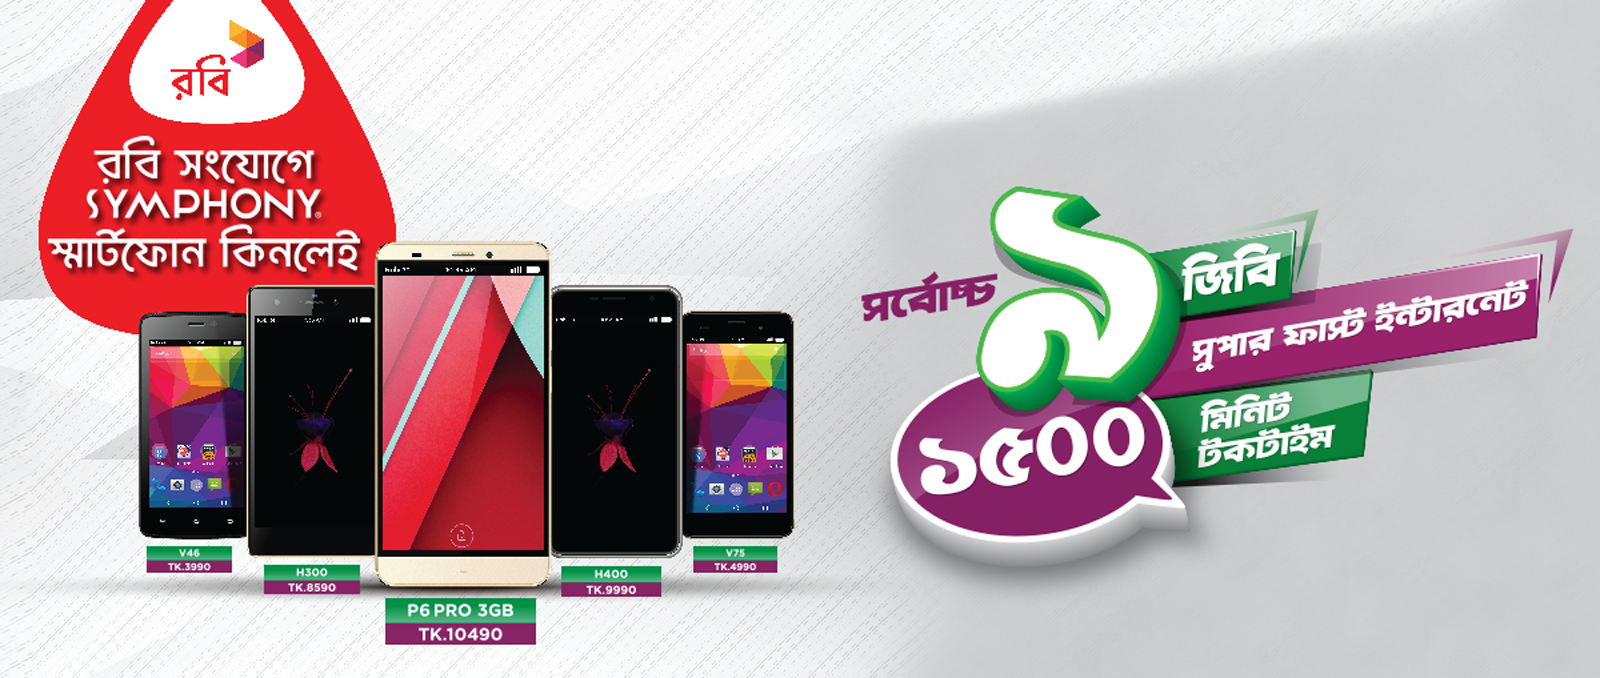 Robi symphony new Handset package Free 9GB Internet & 1500 Minutes Talktime